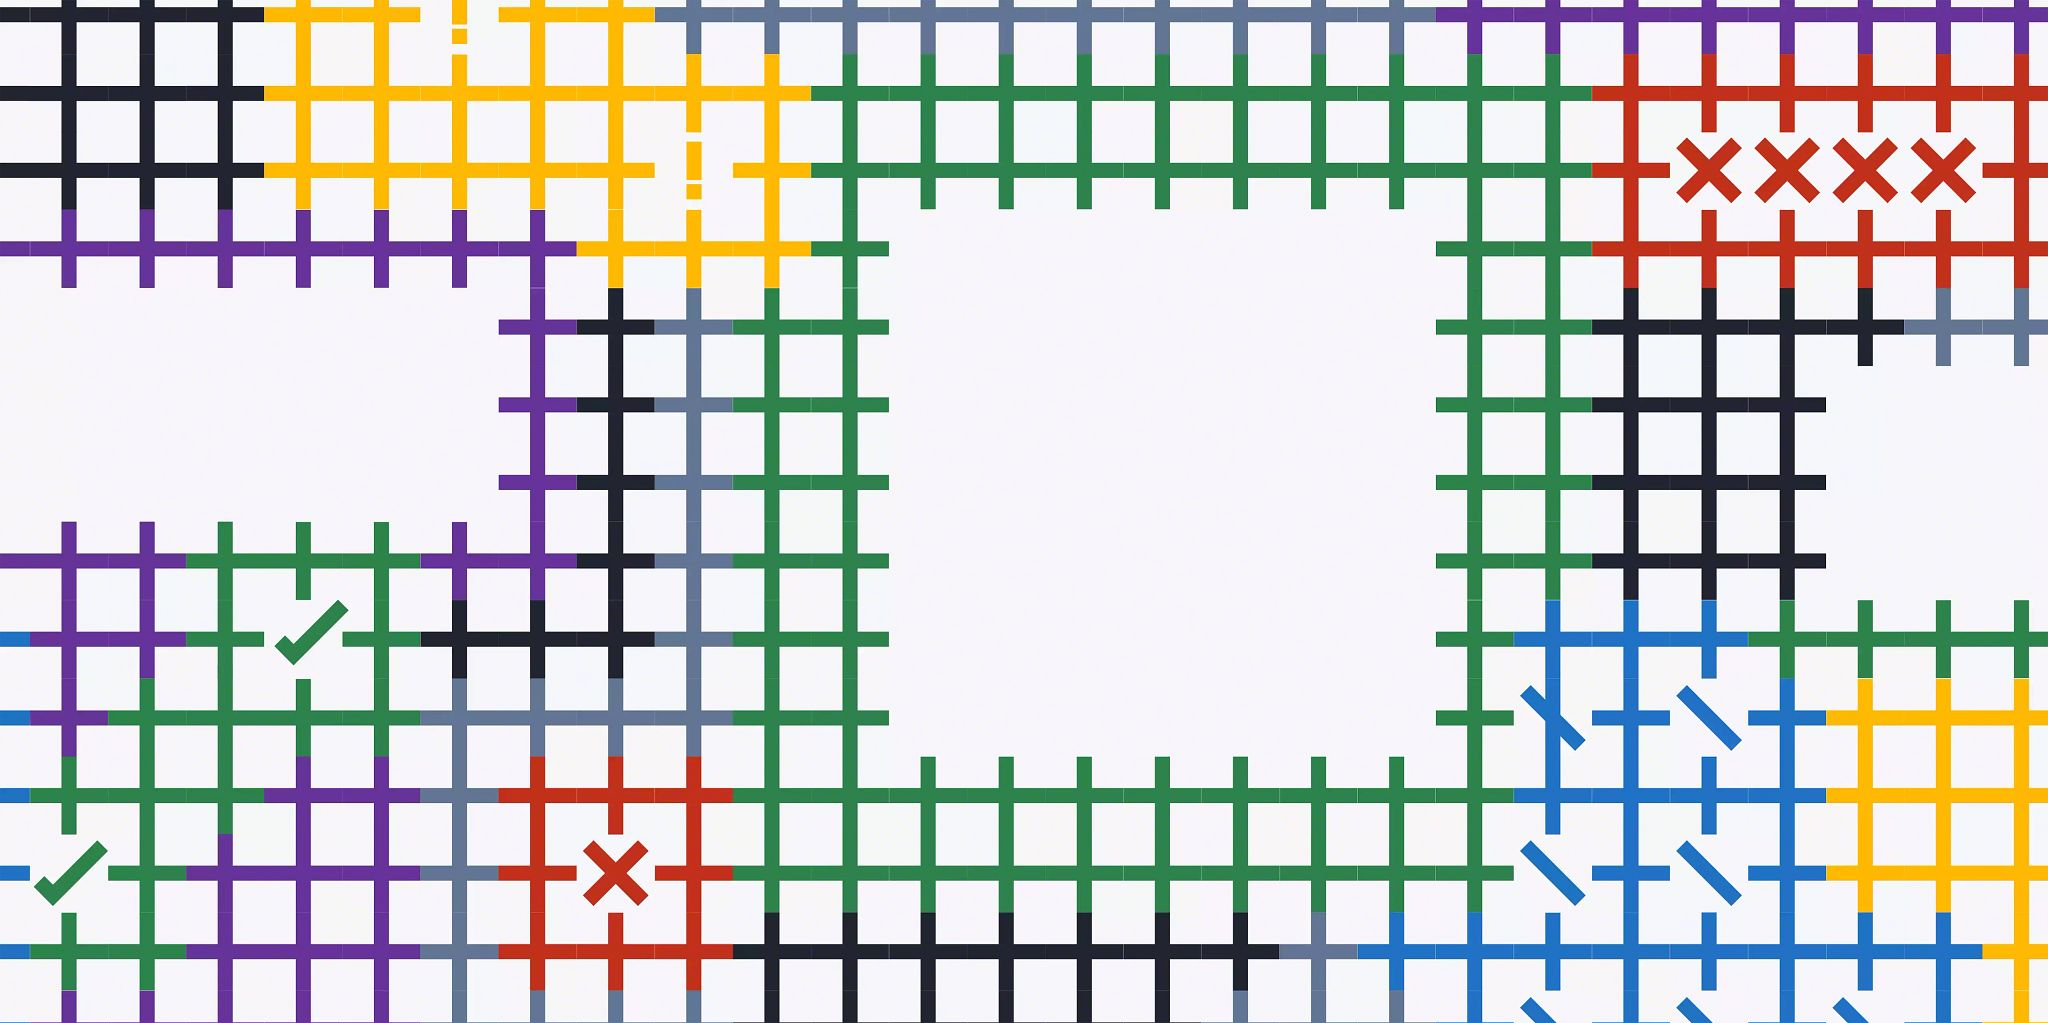 A multi-colored grid with a white square overlay and two white oval overlays.